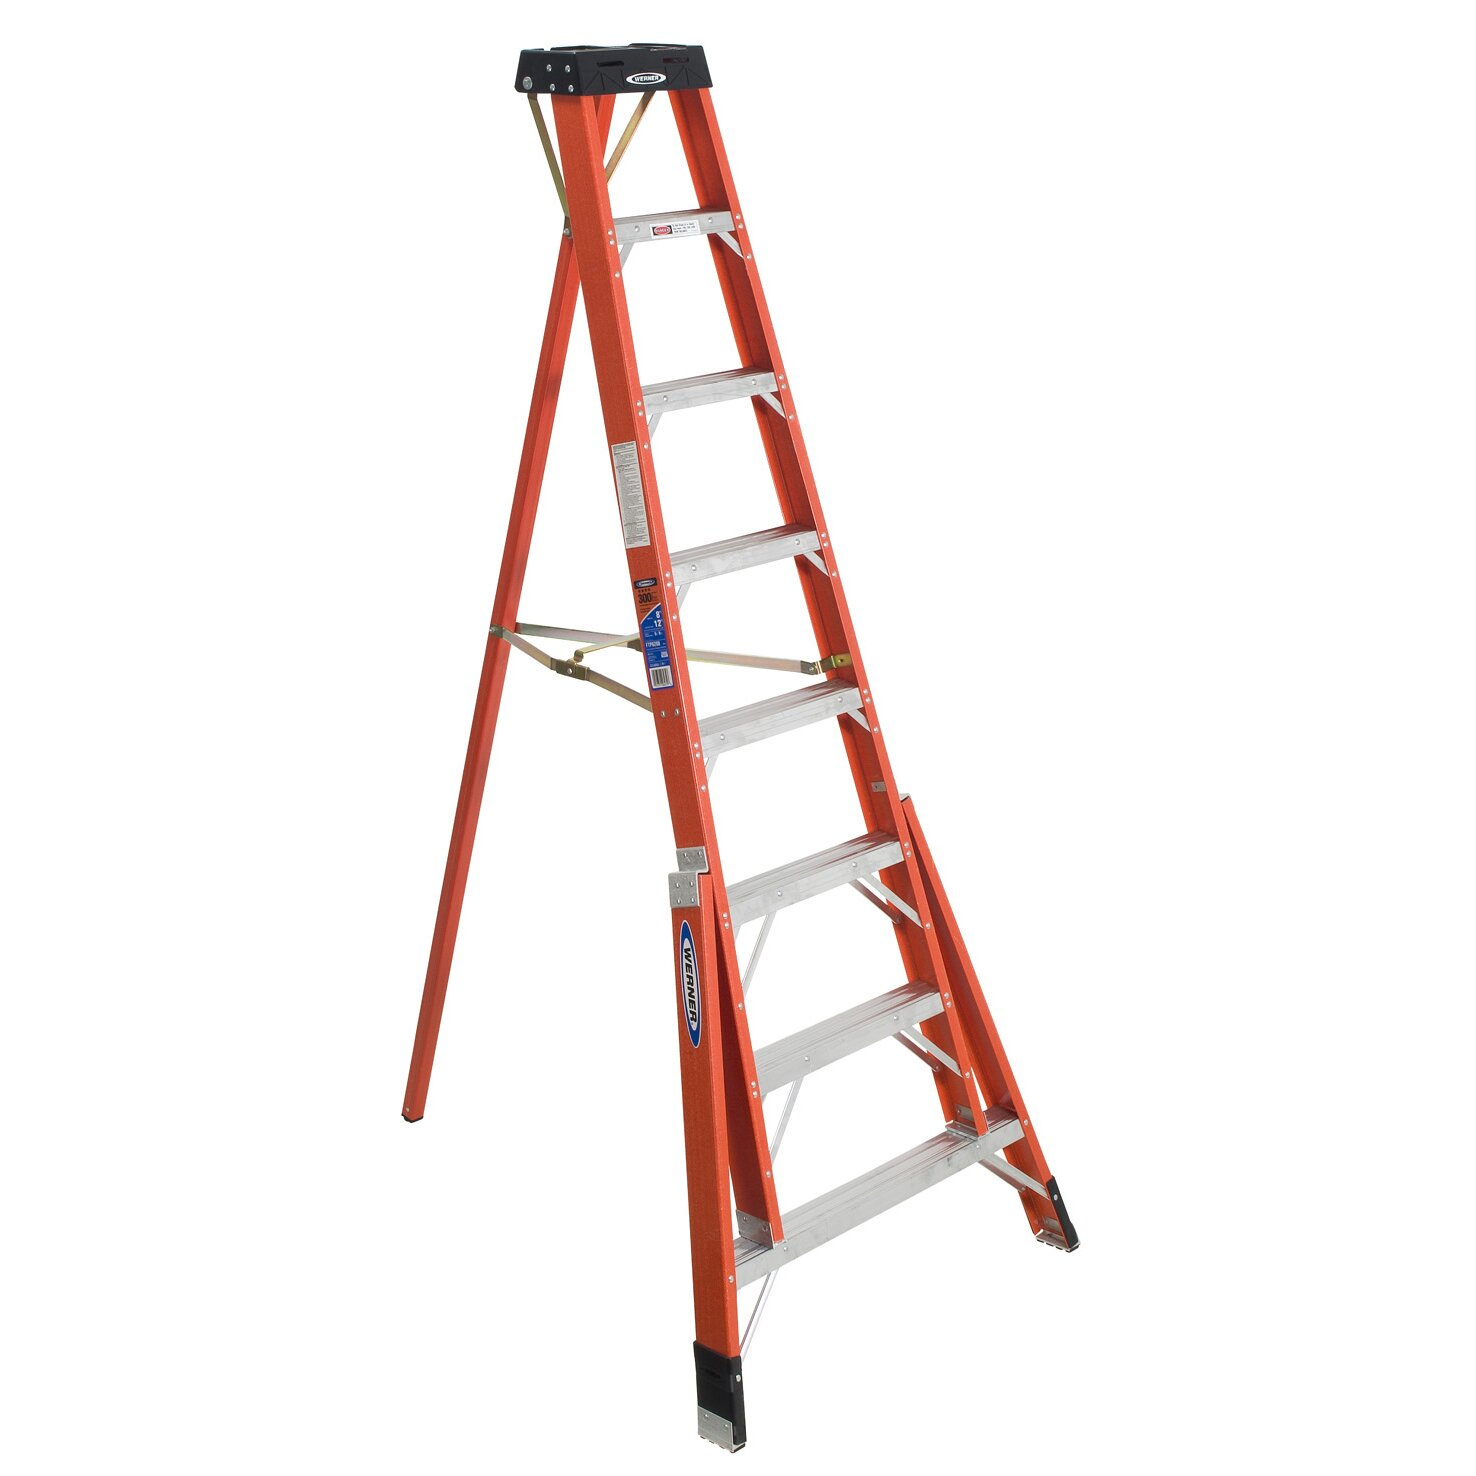 8 Ft Aluminum Tripod Step Ladder With 300 Lb Load